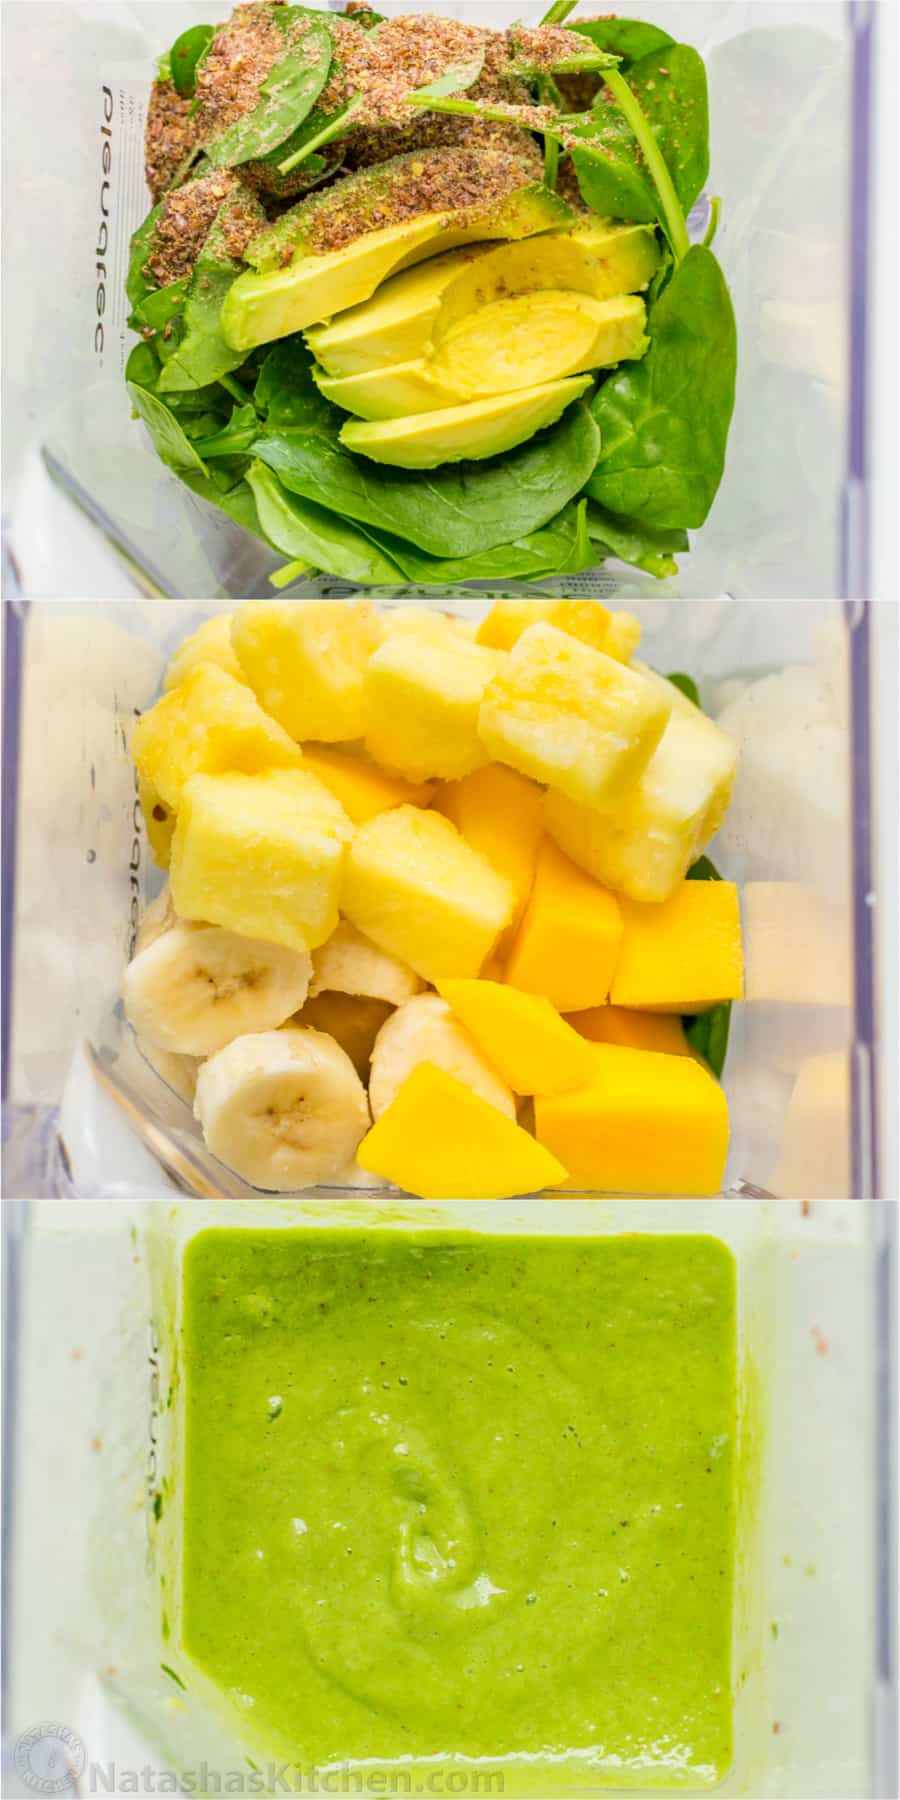 How to make smoothie bowls with step by step photos in the blender before and after smoothie bowl is blended